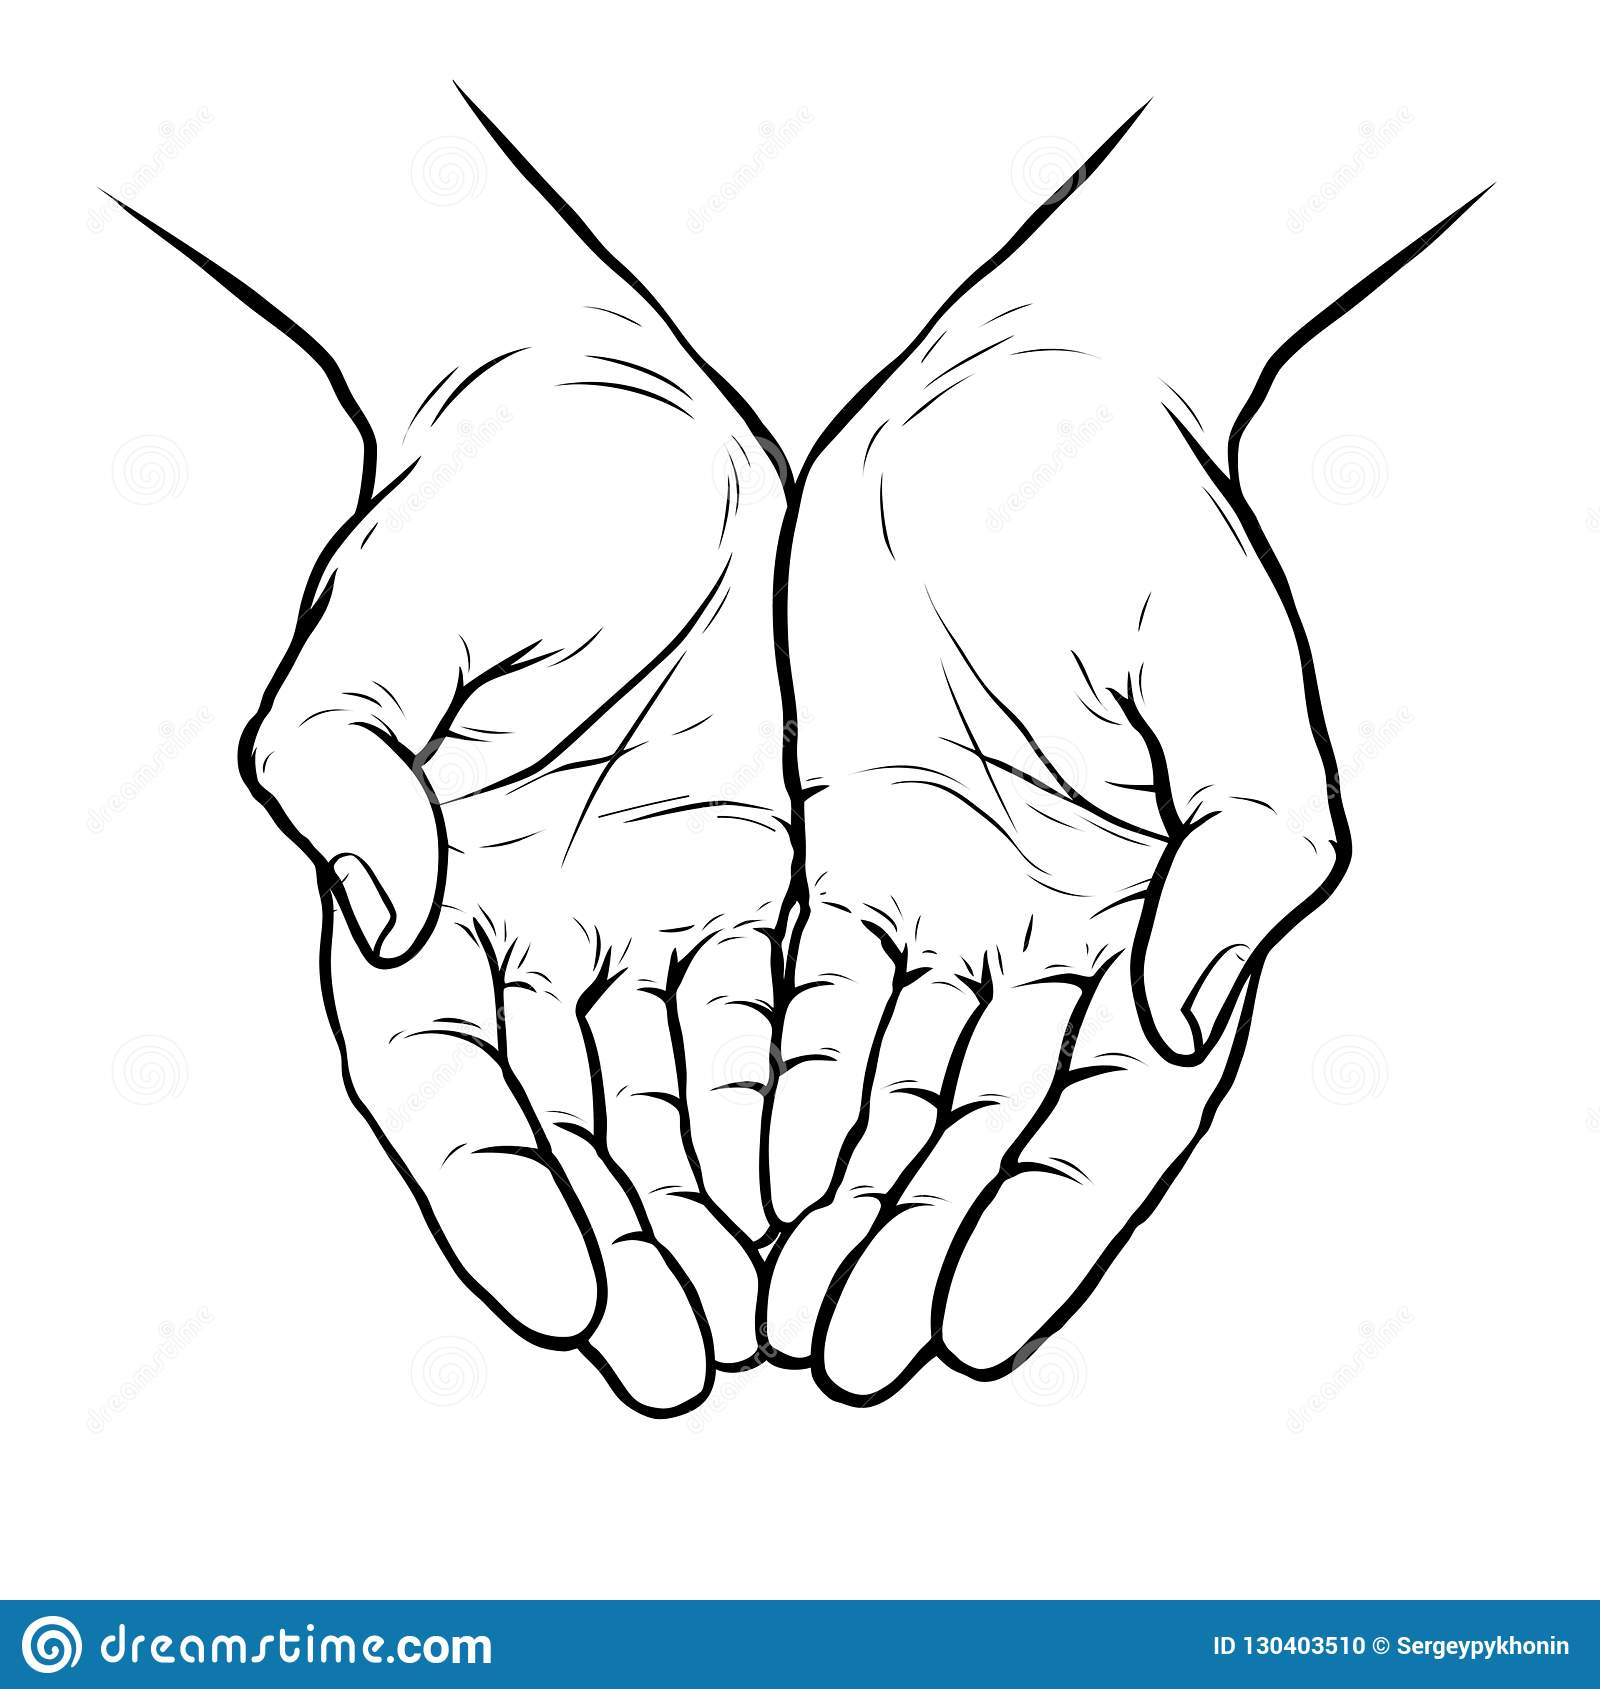 Hands Cupped Stock Illustrations – 633 Hands Cupped Stock ...